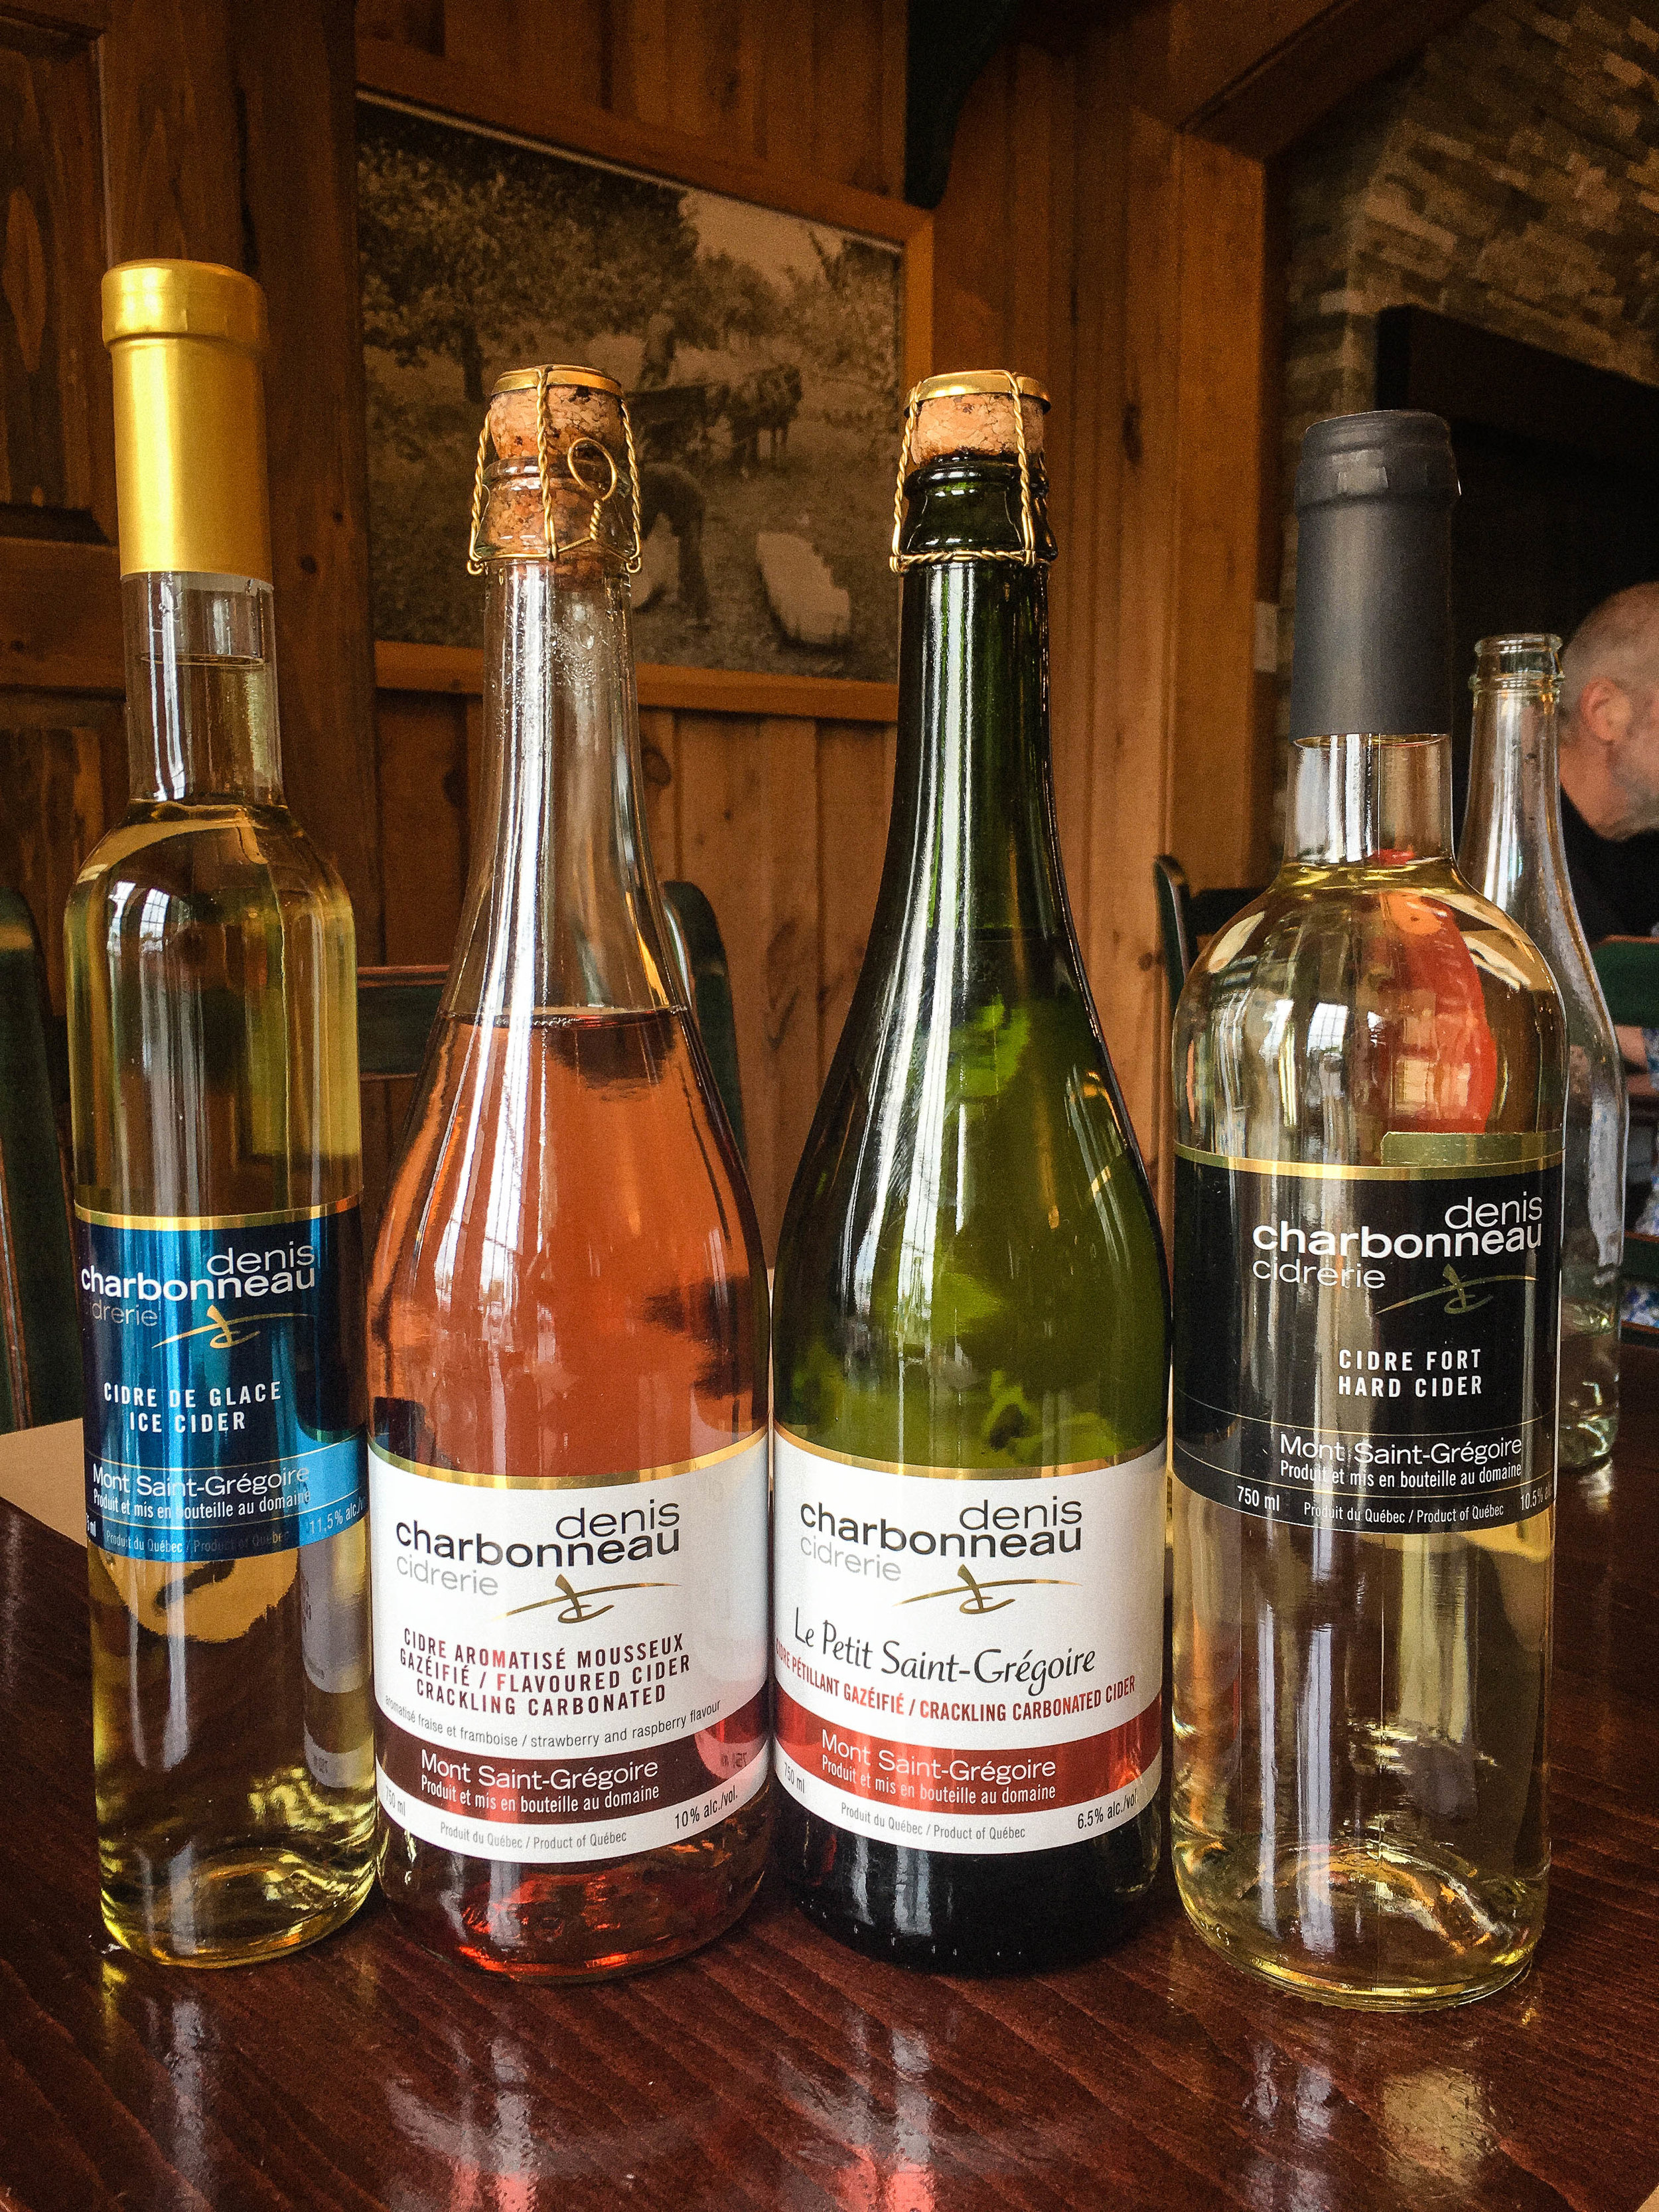 The different ciders offered at Denis Charbonneau